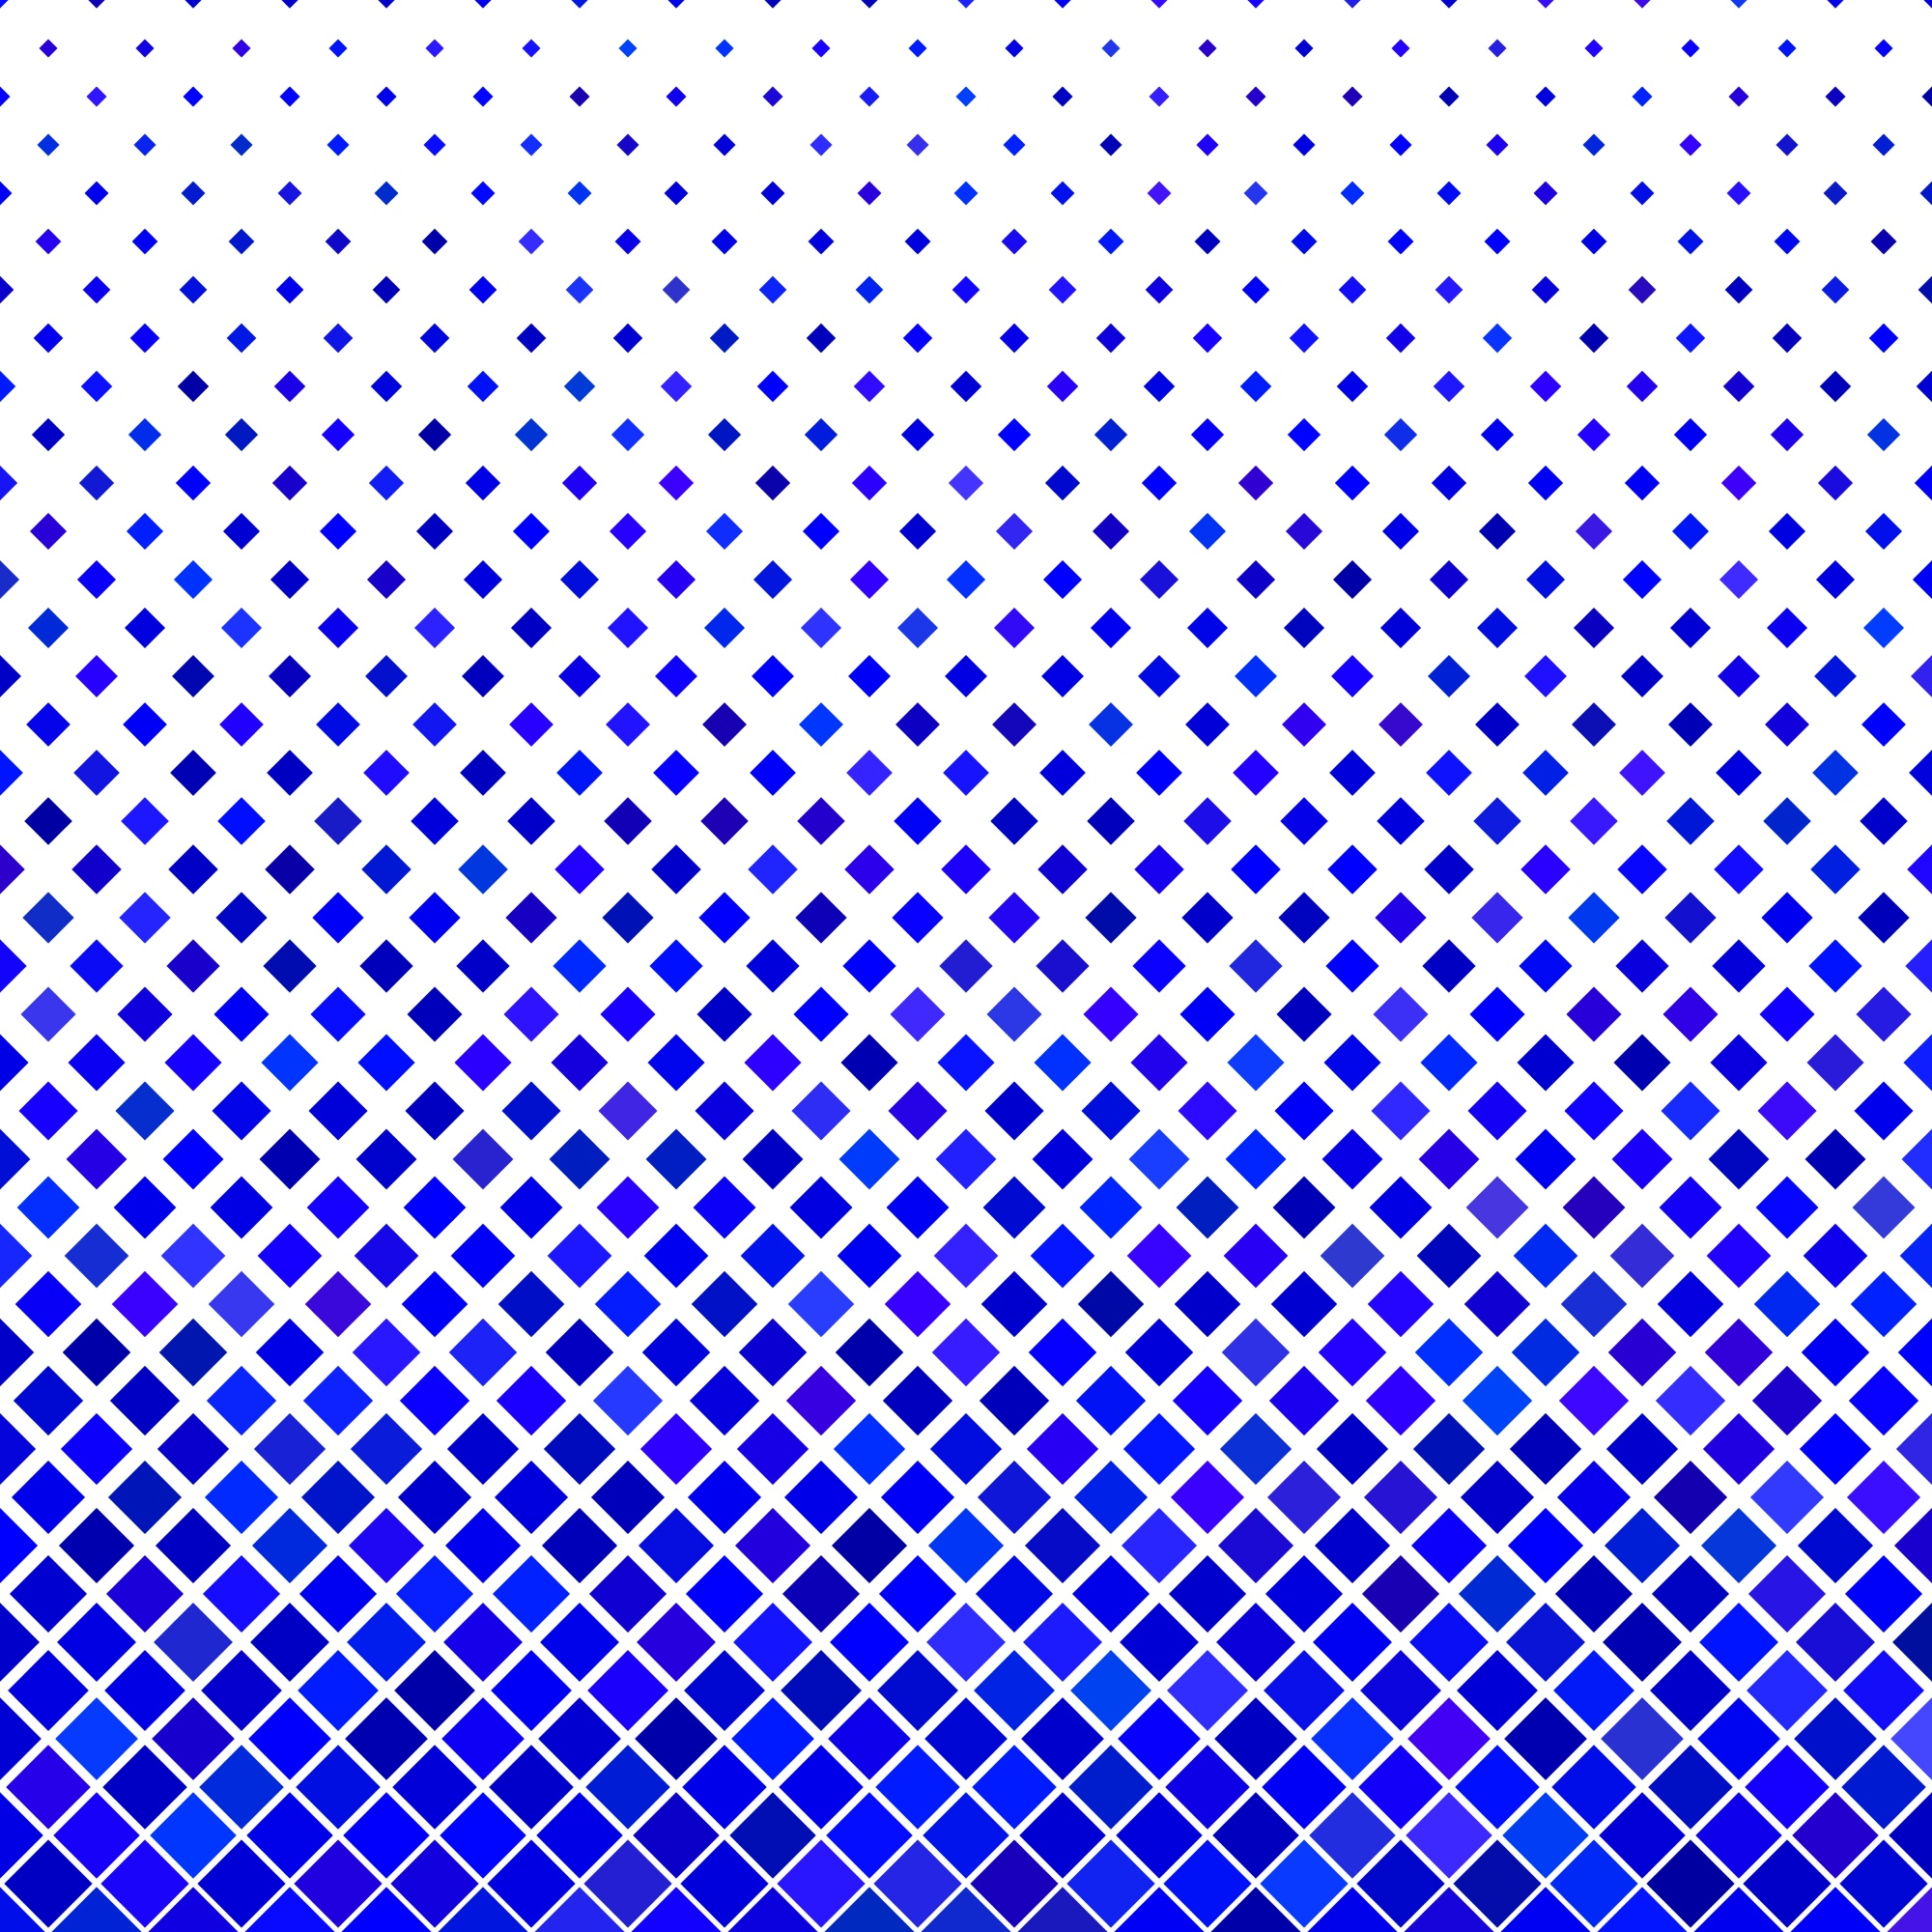 Colored square pattern background - geometric vector illustration